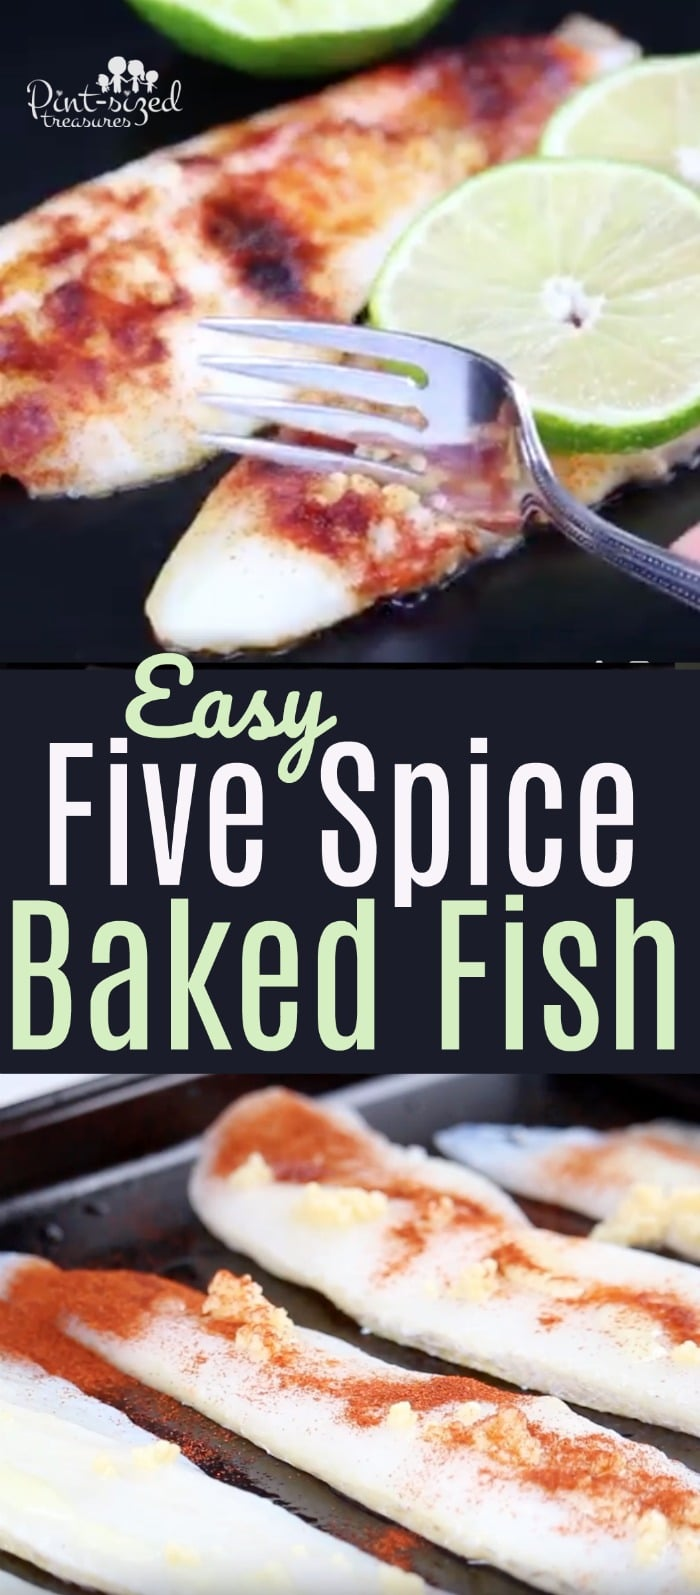 Easy, five-spiced, baked fish is absolutely delicious! t's ready in just minutes and is packed full of fresh flavors and spices! #bakedfishrecipe #easybakedfish #fishrecipes #easymealidea #easydinner #quickandeasymeal #bakedfishmeal  #20minutemeals #familyrecipes